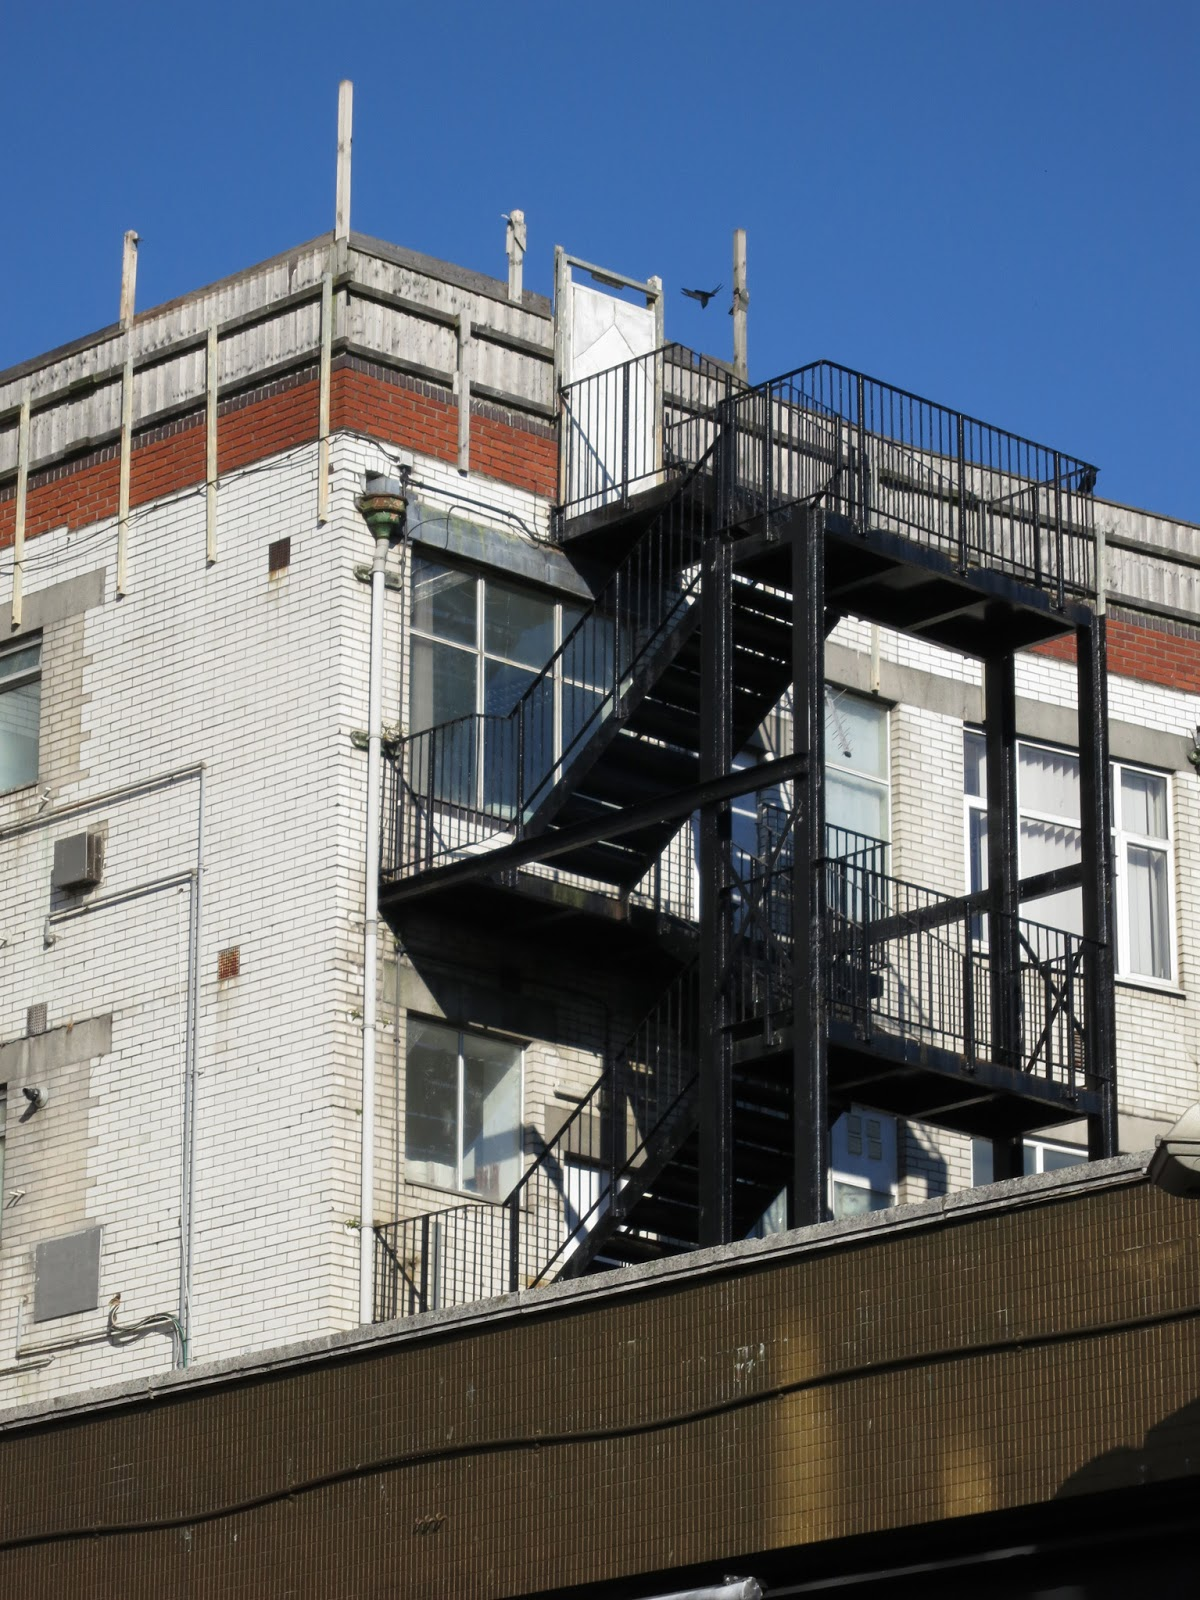 Building with fire escape,whit bricks and windows.